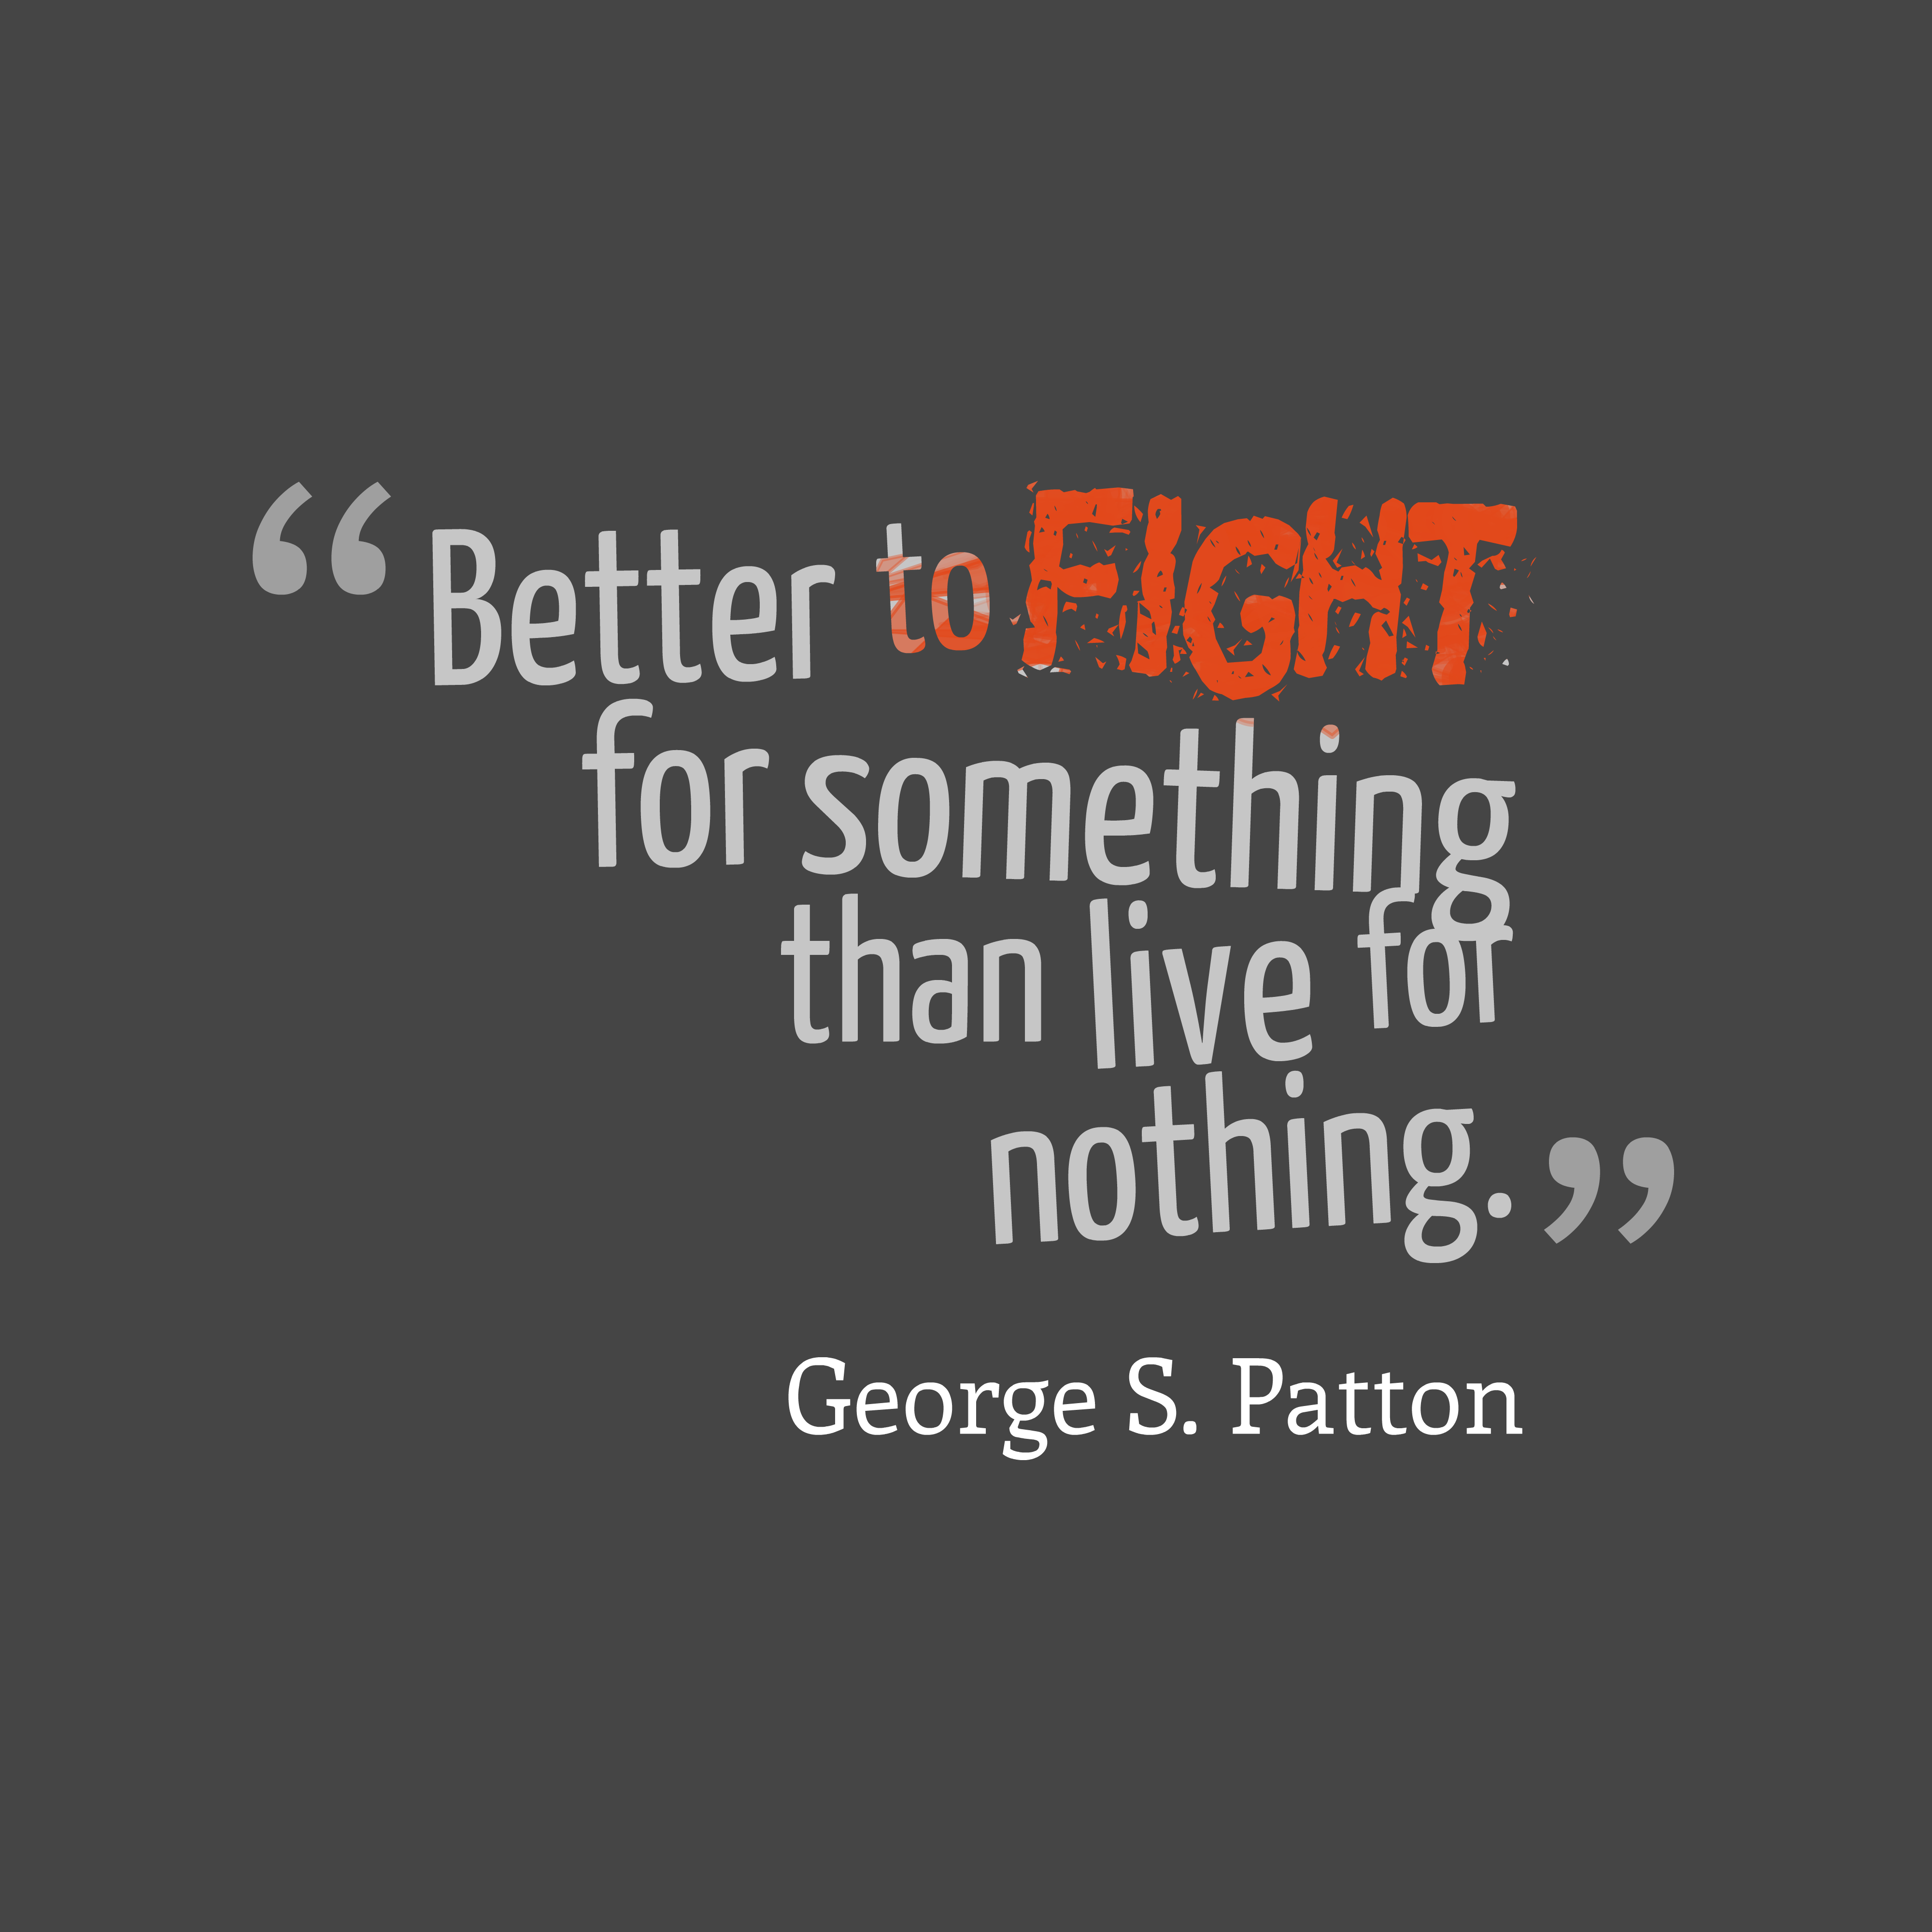 Fighting Quotes: Get High Resolution Using Text From George S. Patton Quote